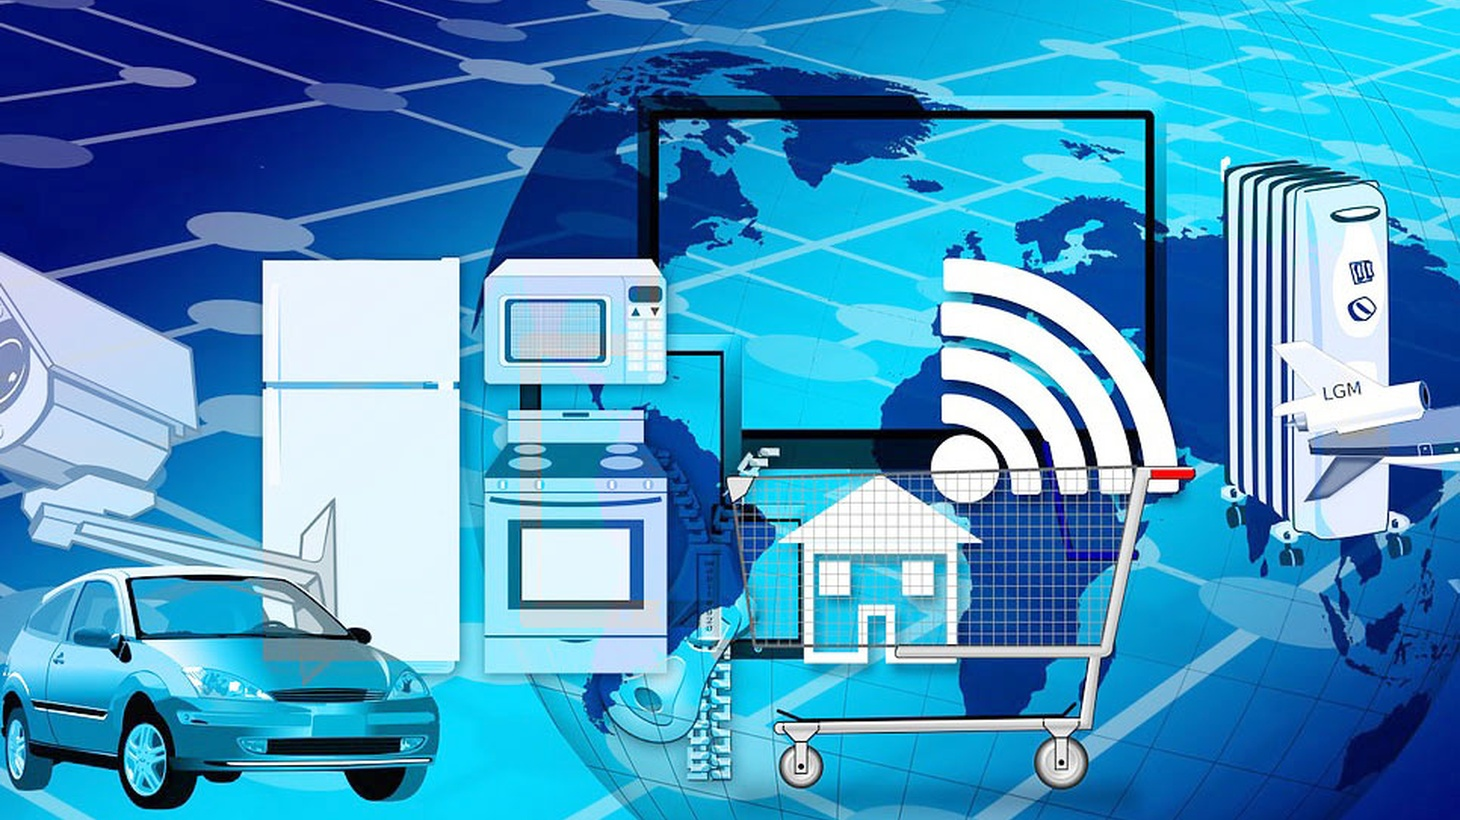 """The """"Internet of Things"""" consists of many devices all connected to the Internet and making life and business easier and more convenient than ever. But manufacturers are putting technology ahead of security — as illustrated all too dramatically by last week's massive disruption of services."""